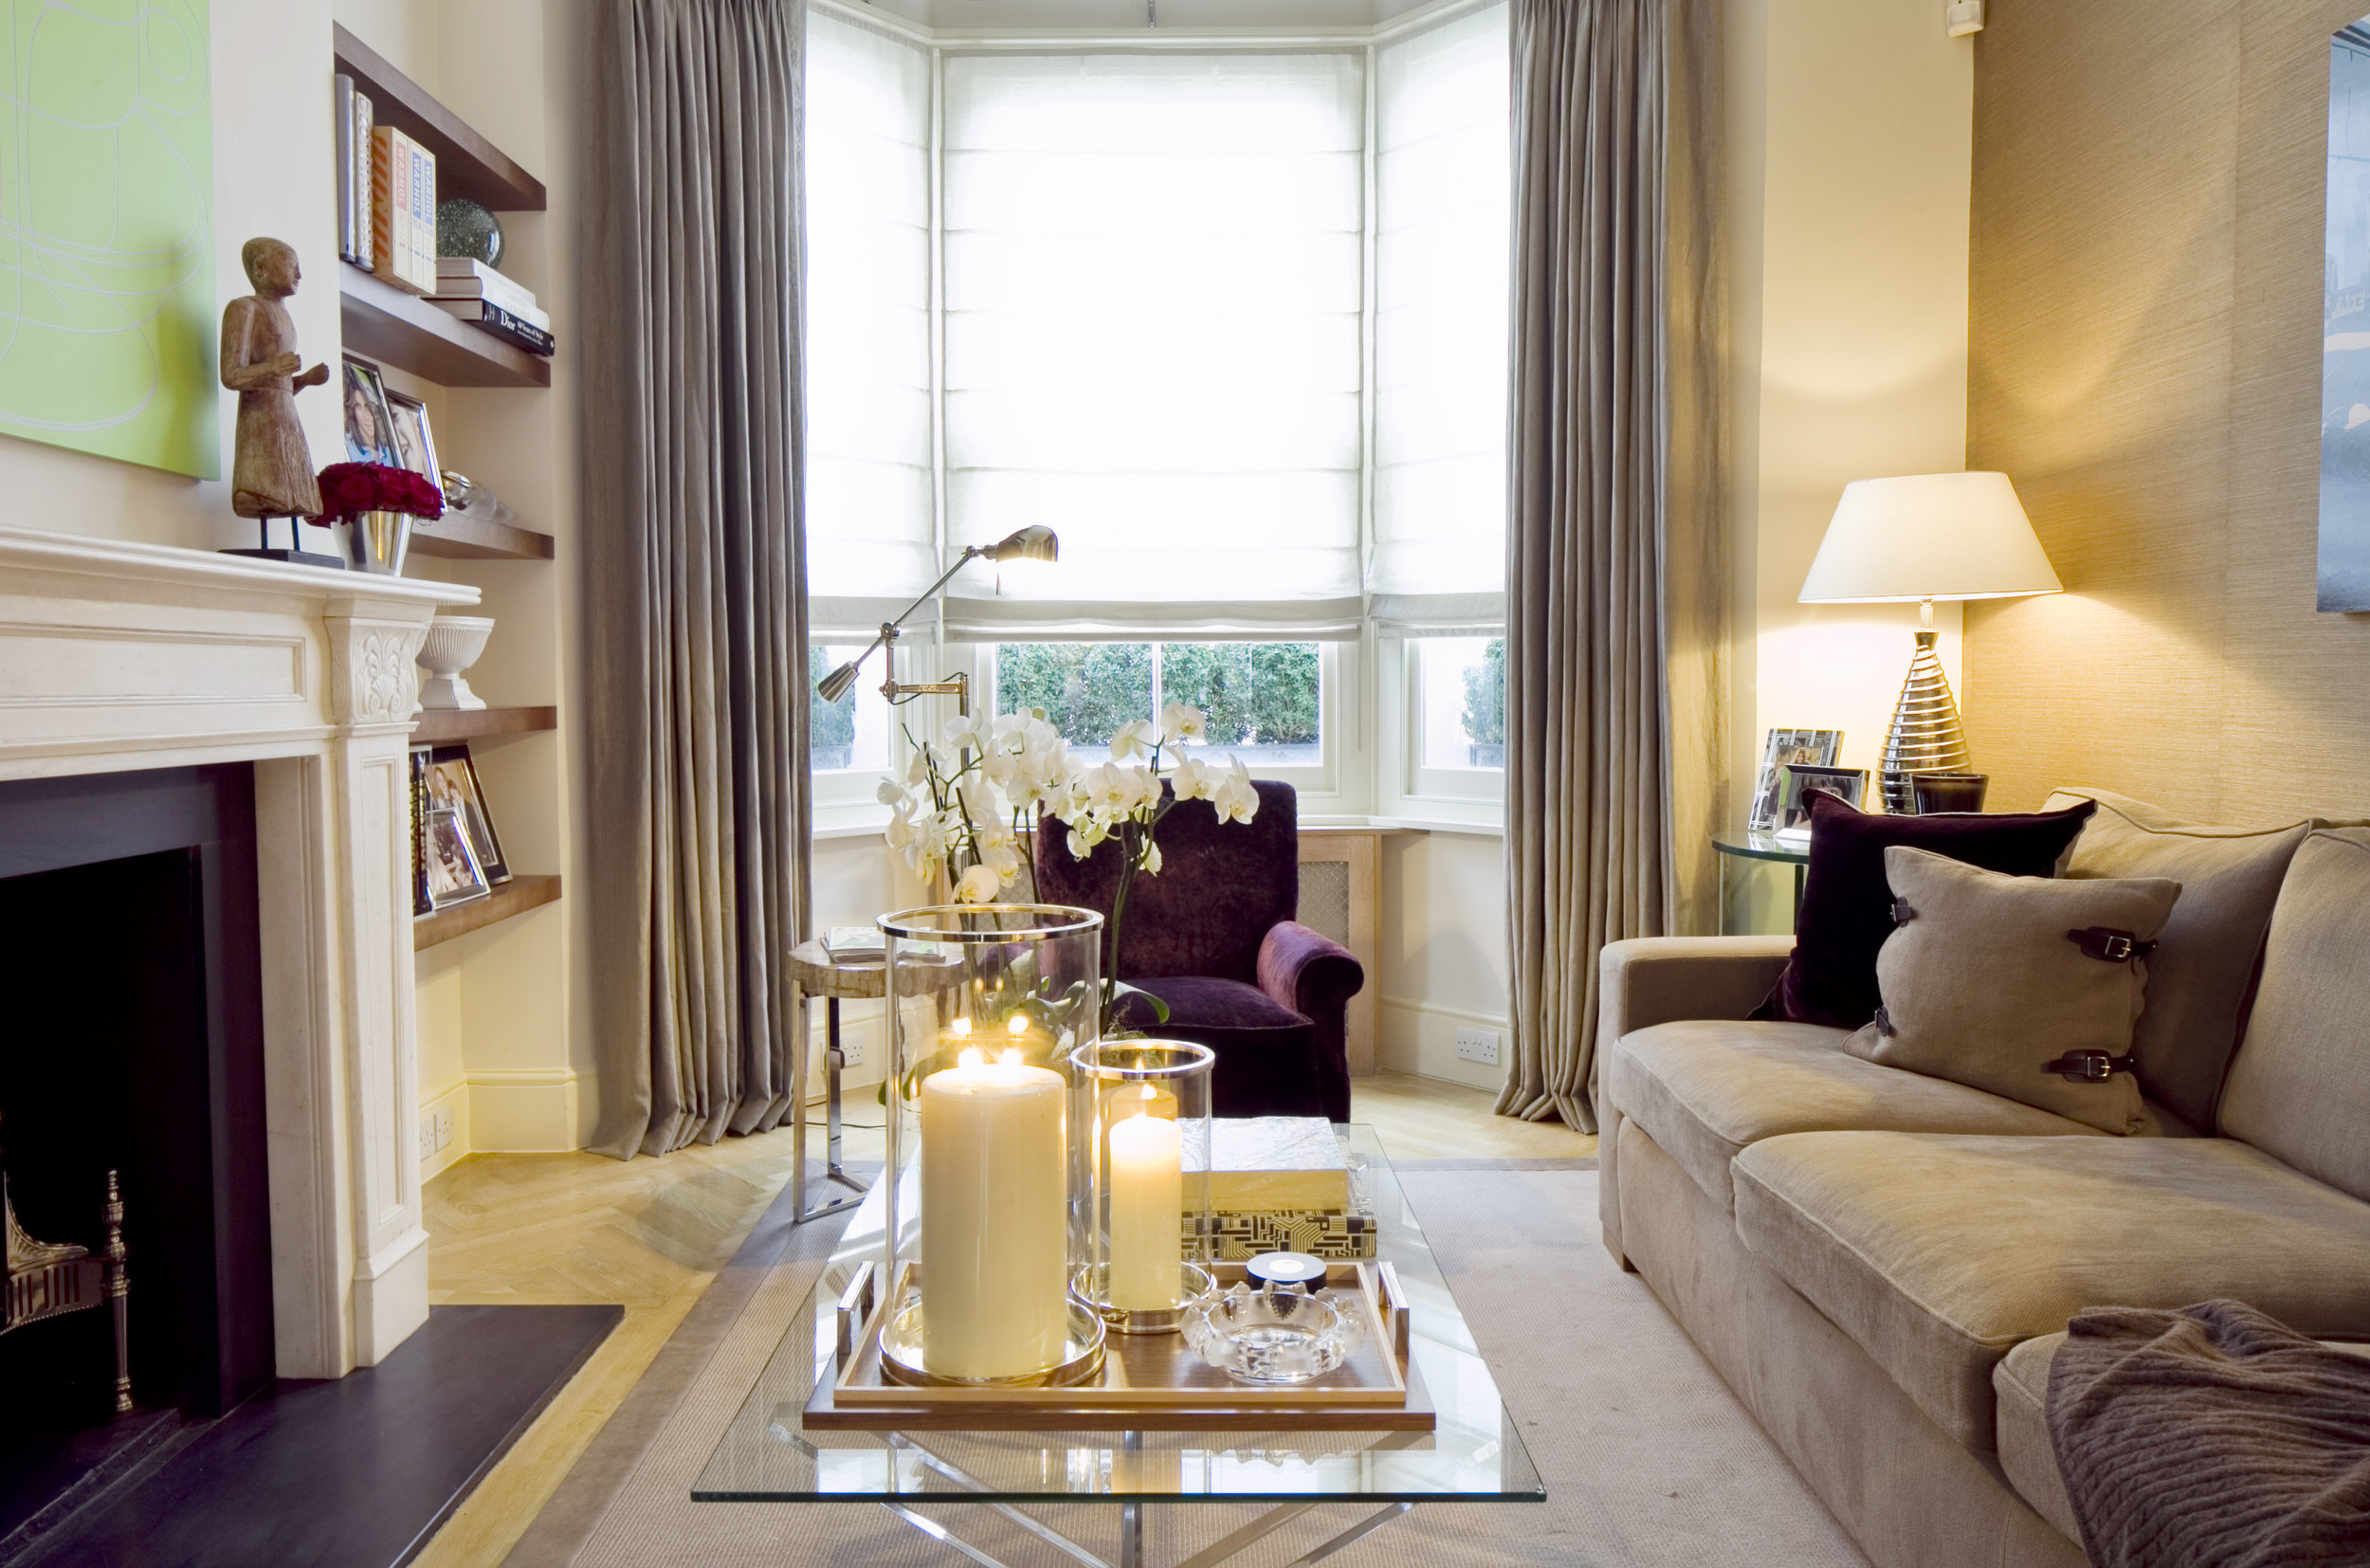 No. 5 Glebe Place, London, SW3. Interior designed and styled by Maurizio Pellizzoni.